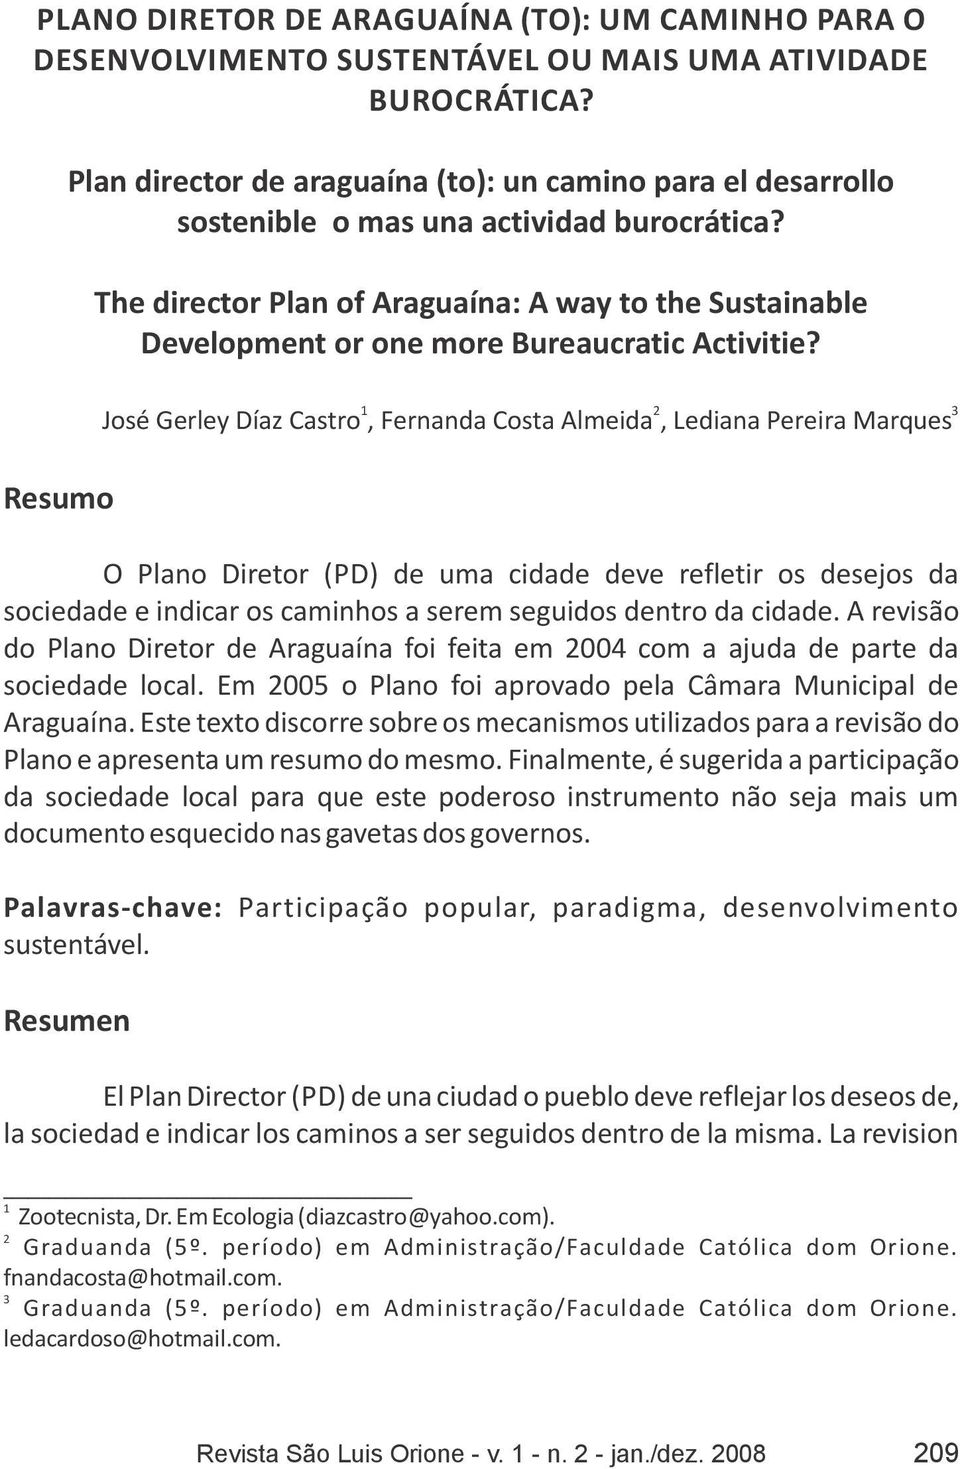 The director Plan of Araguaína: A way to the Sustainable Development or one more Bureaucratic Activitie?